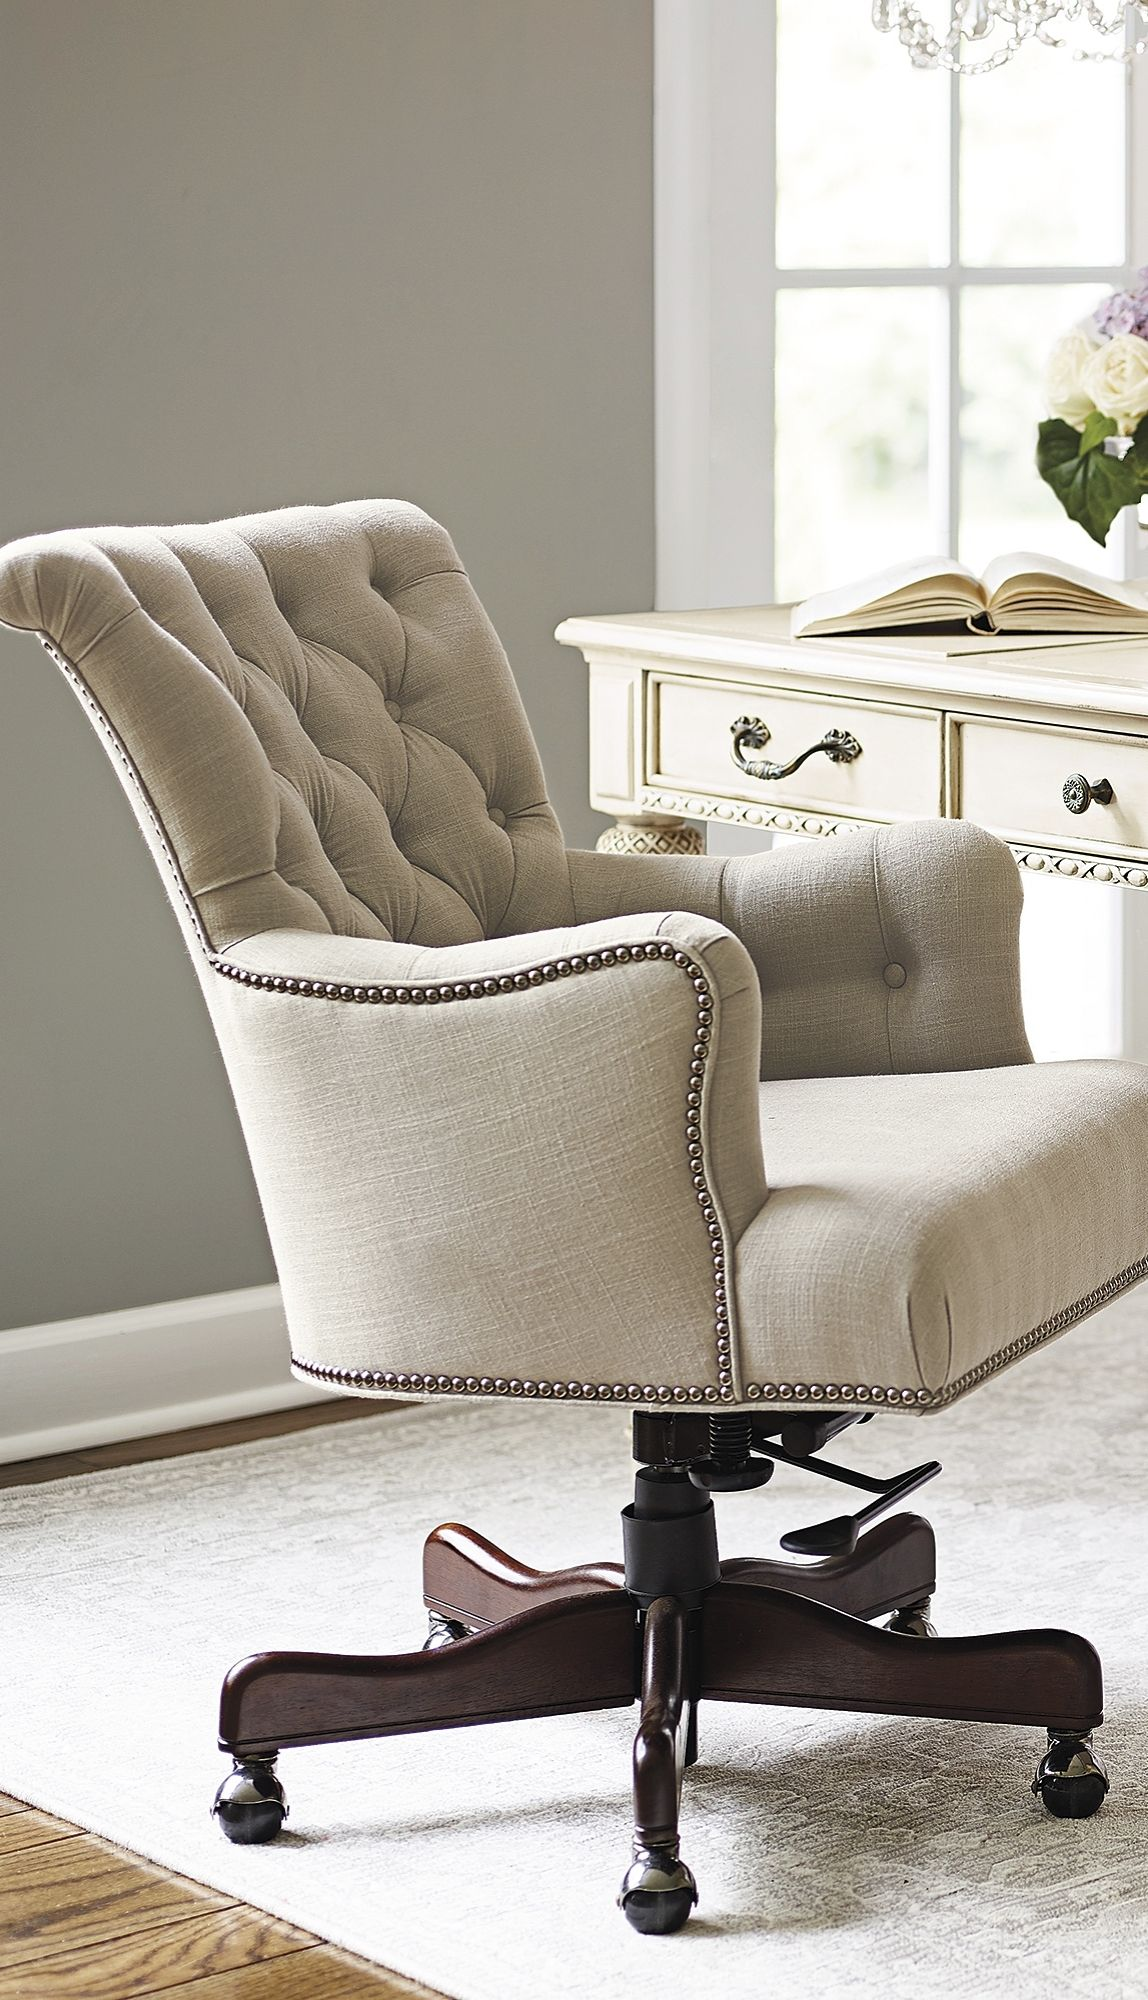 hight resolution of button tufted linen accented with silver nailhead trim defines the elegant averly desk chair